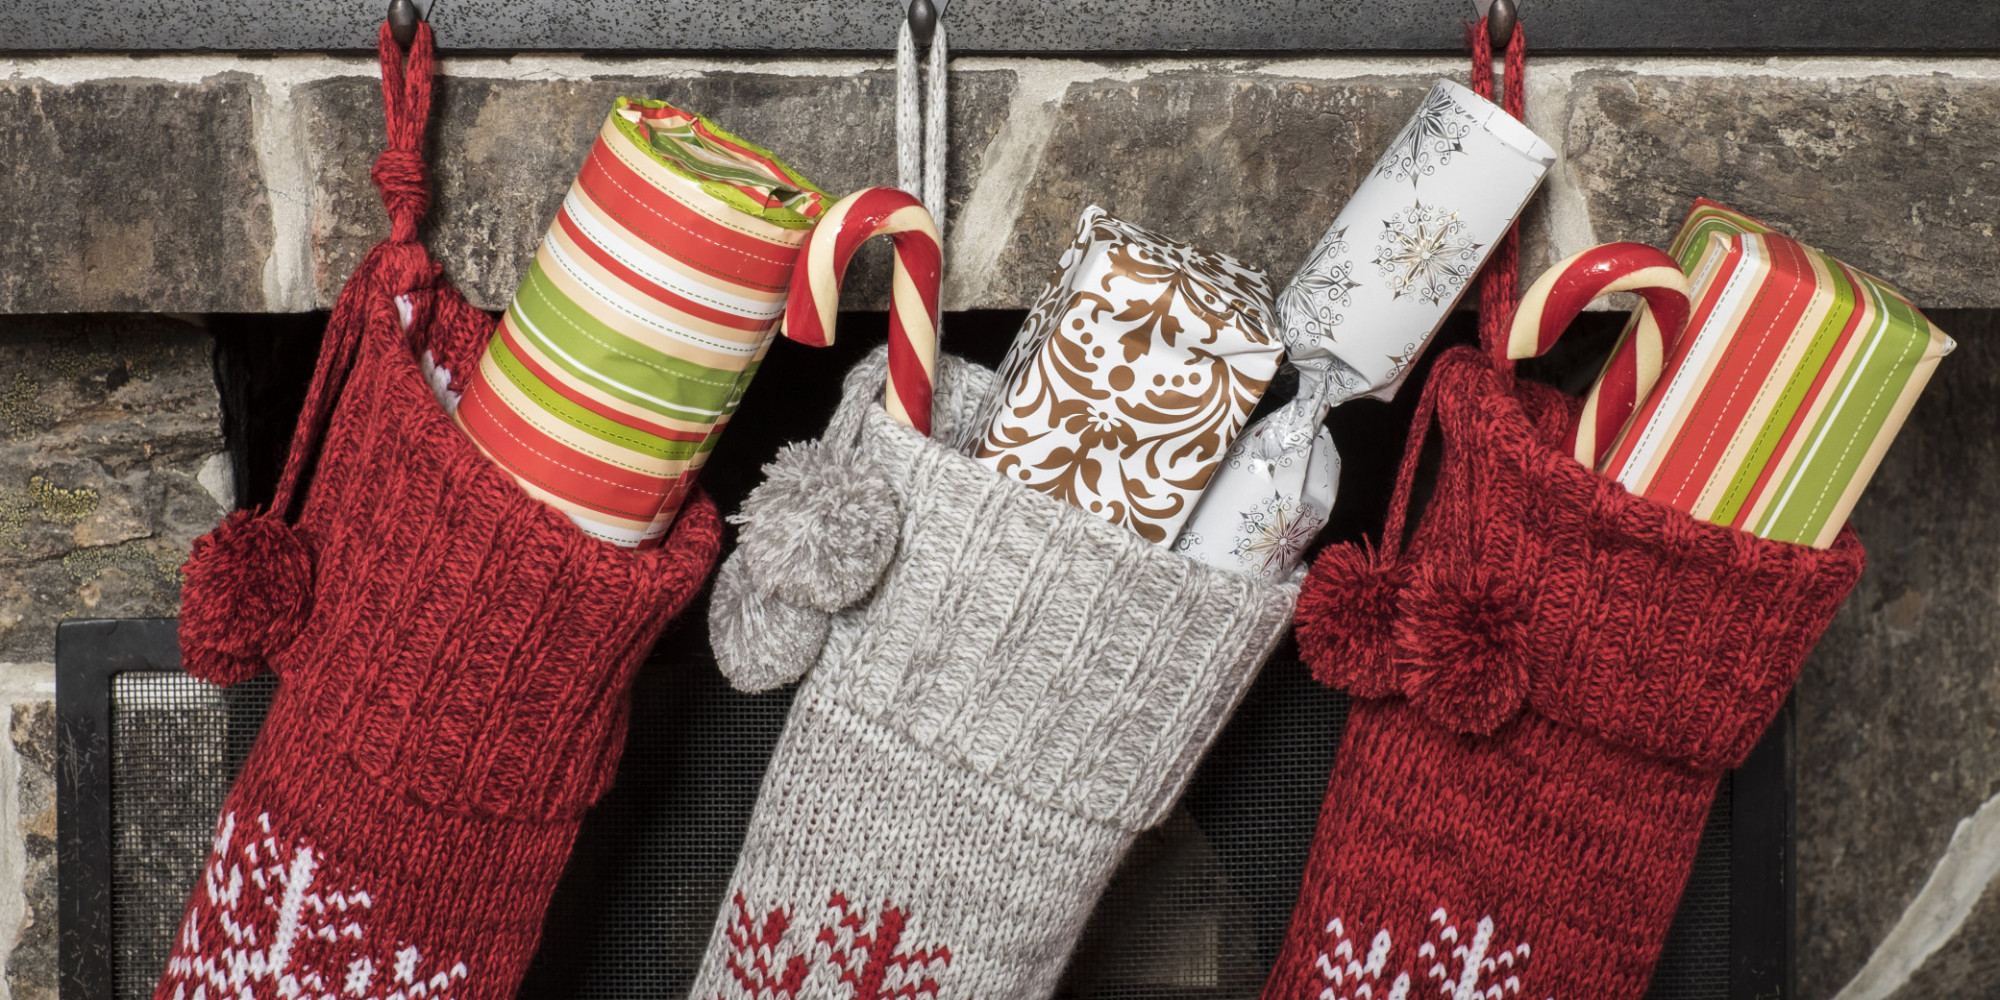 20 Christmas Stocking Stuffer Ideas 15 And Under